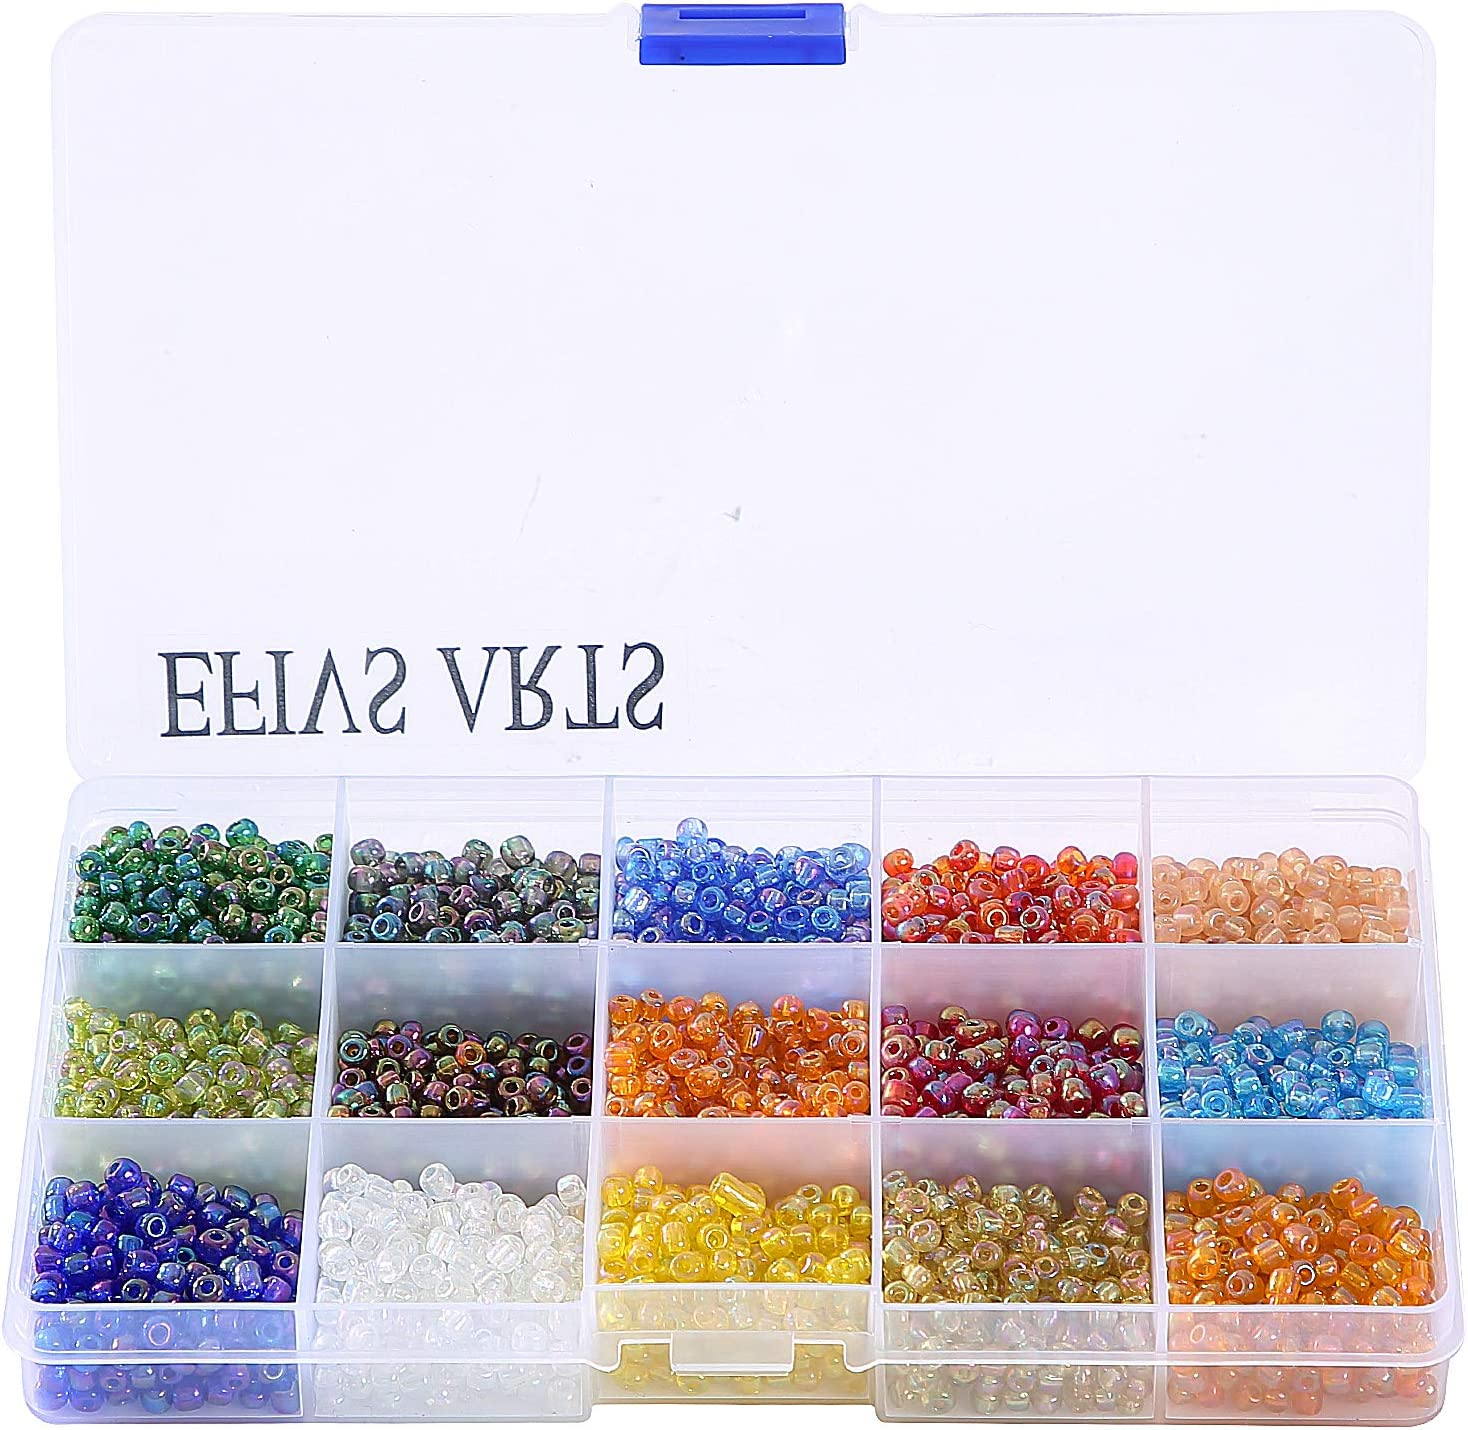 Approximately 1000pcs Efivs Arts Halloween Giant Crayon Beads,Barrel Pony Beads Big Spcaer Beads for for Halloween DIY Jewelry Making 6 x 9 mm